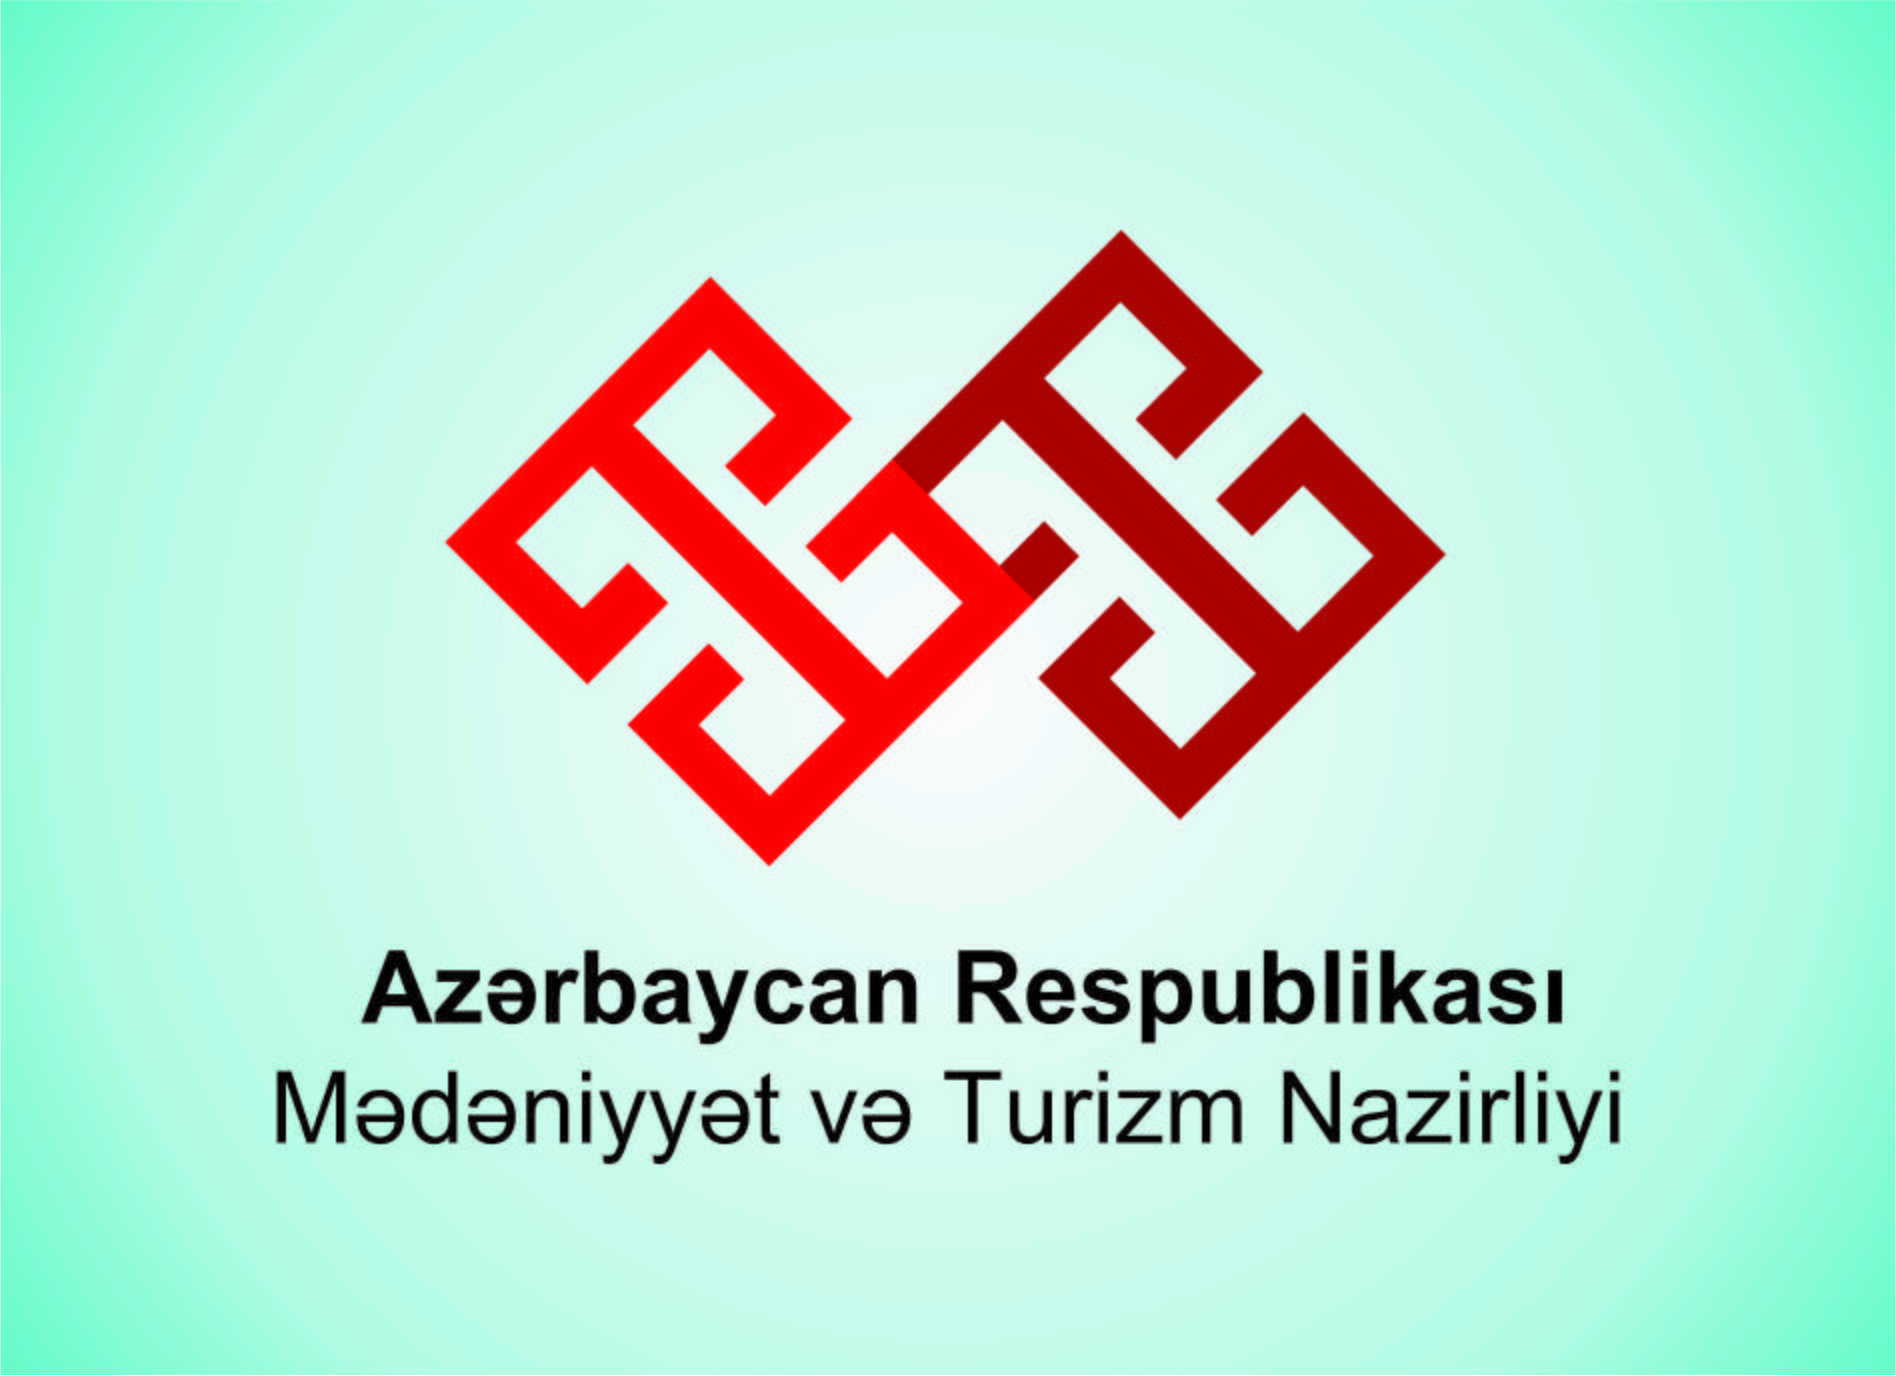 Ministry of Culture and Tourism: Kamancha is a national musical instrument of Azerbaijan